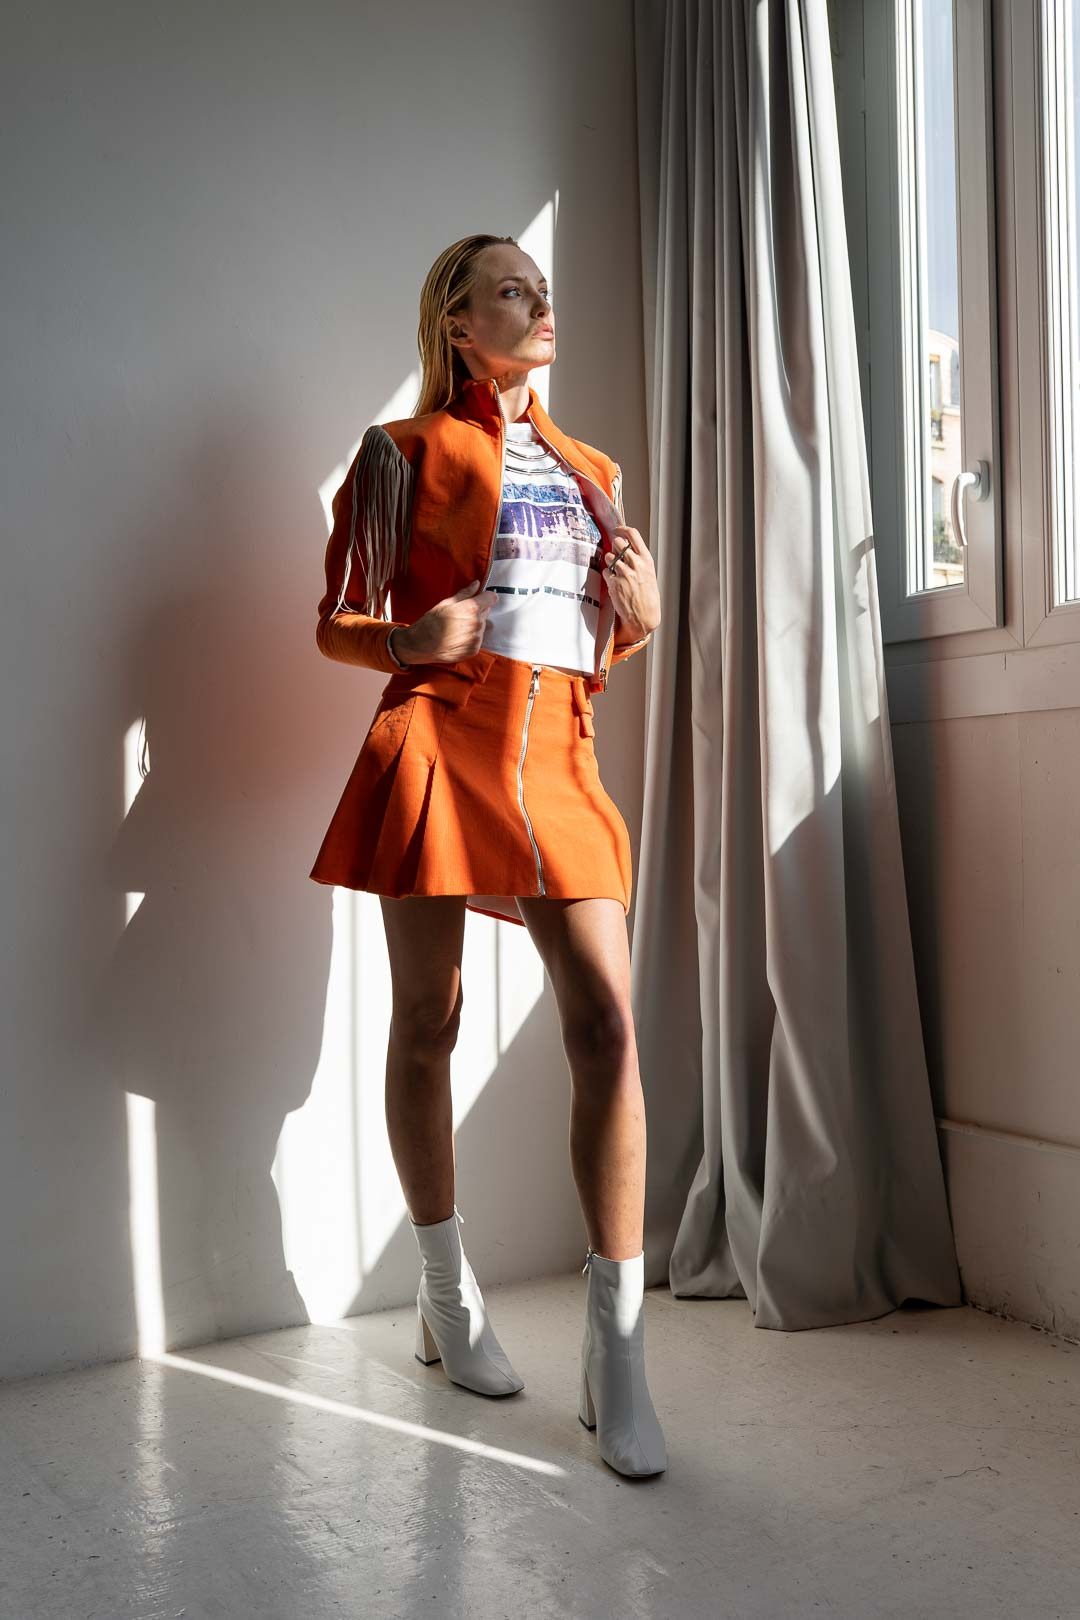 female model in orange outfit during a fashion shoot